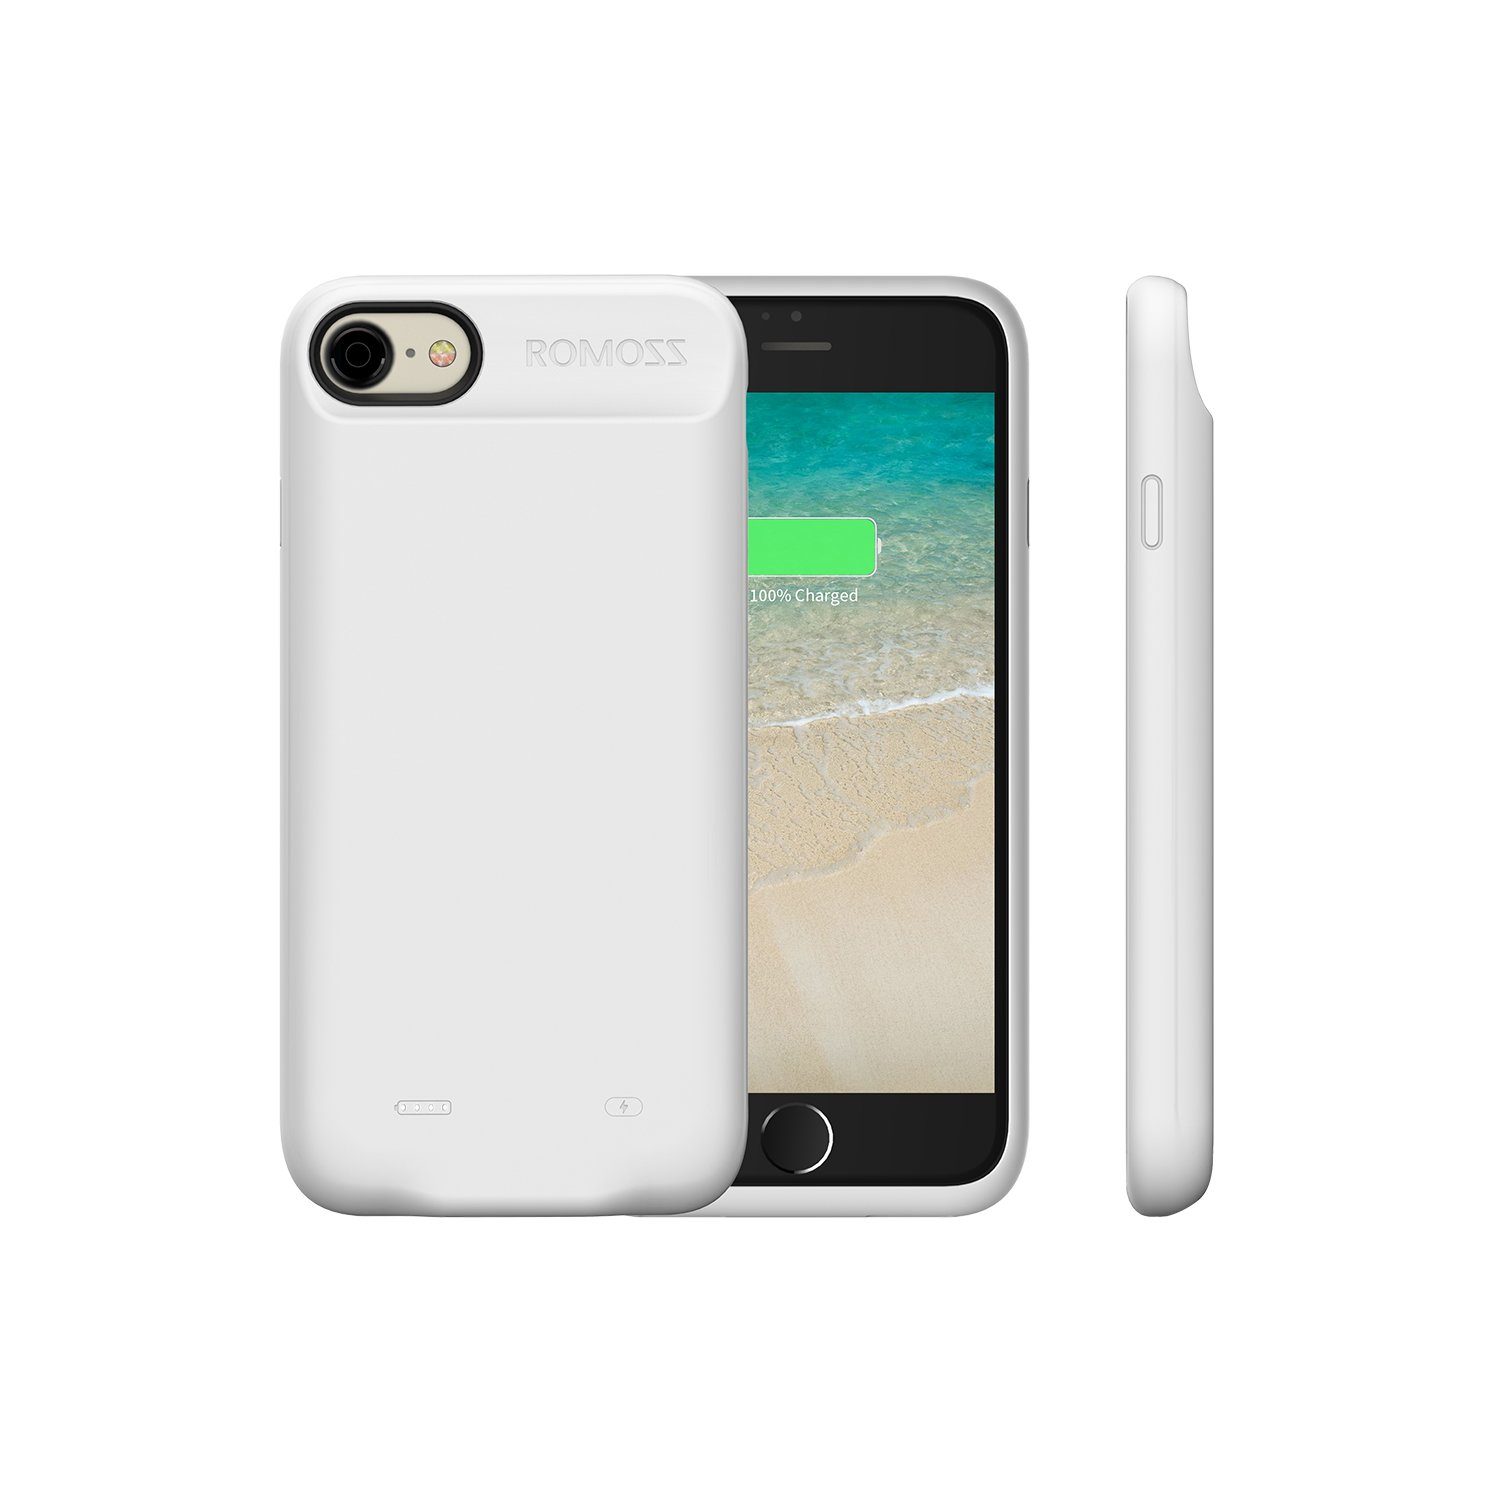 iPhone 7 Battery Case, ROMOSS Encase 7 Ultra Slim Extended Charger Case Cover for iPhone 7 (4.7 inch) 2800mAh Capacity Extra 100% Battery - White